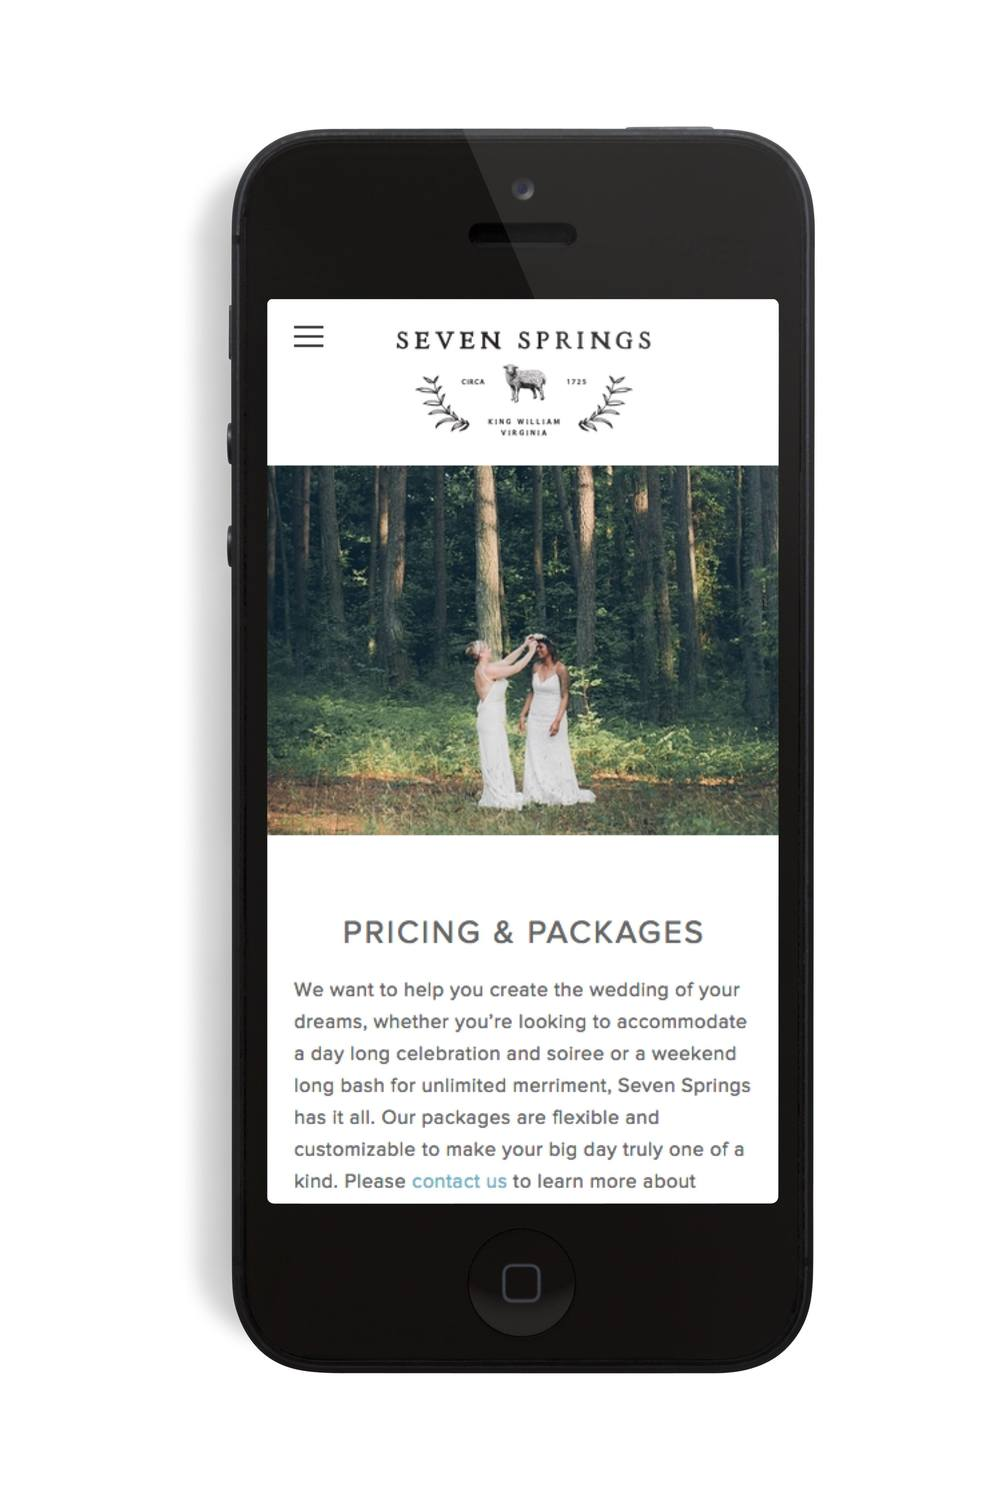 SS+pricing+page+mobile.jpg